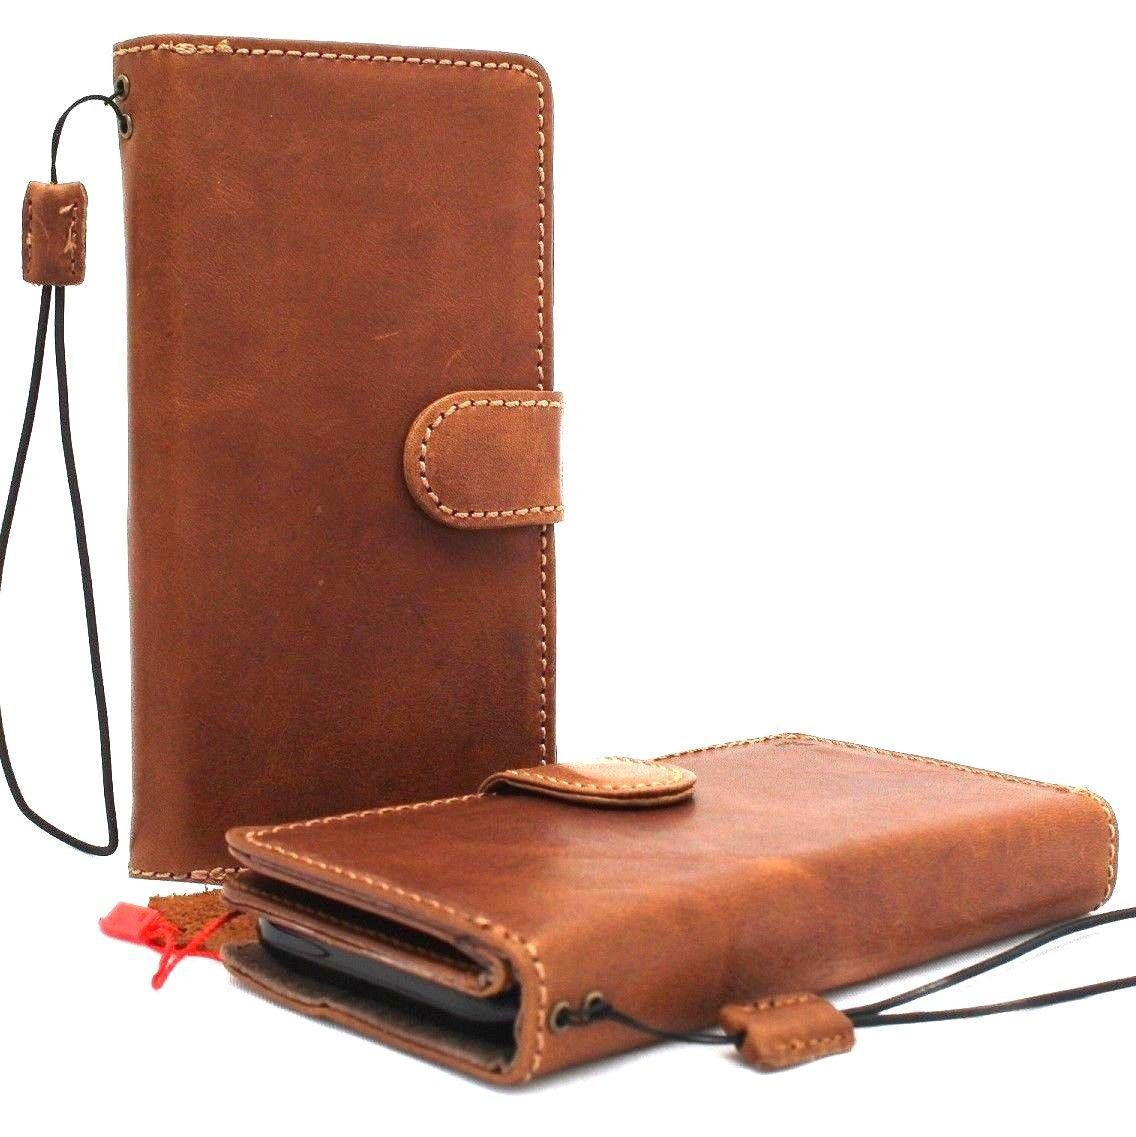 the latest 3c485 f391c Genuine leather Case for iPhone 8 Plus book wallet cover detachabl magnetic  soft holder vintage style Jafo 1948